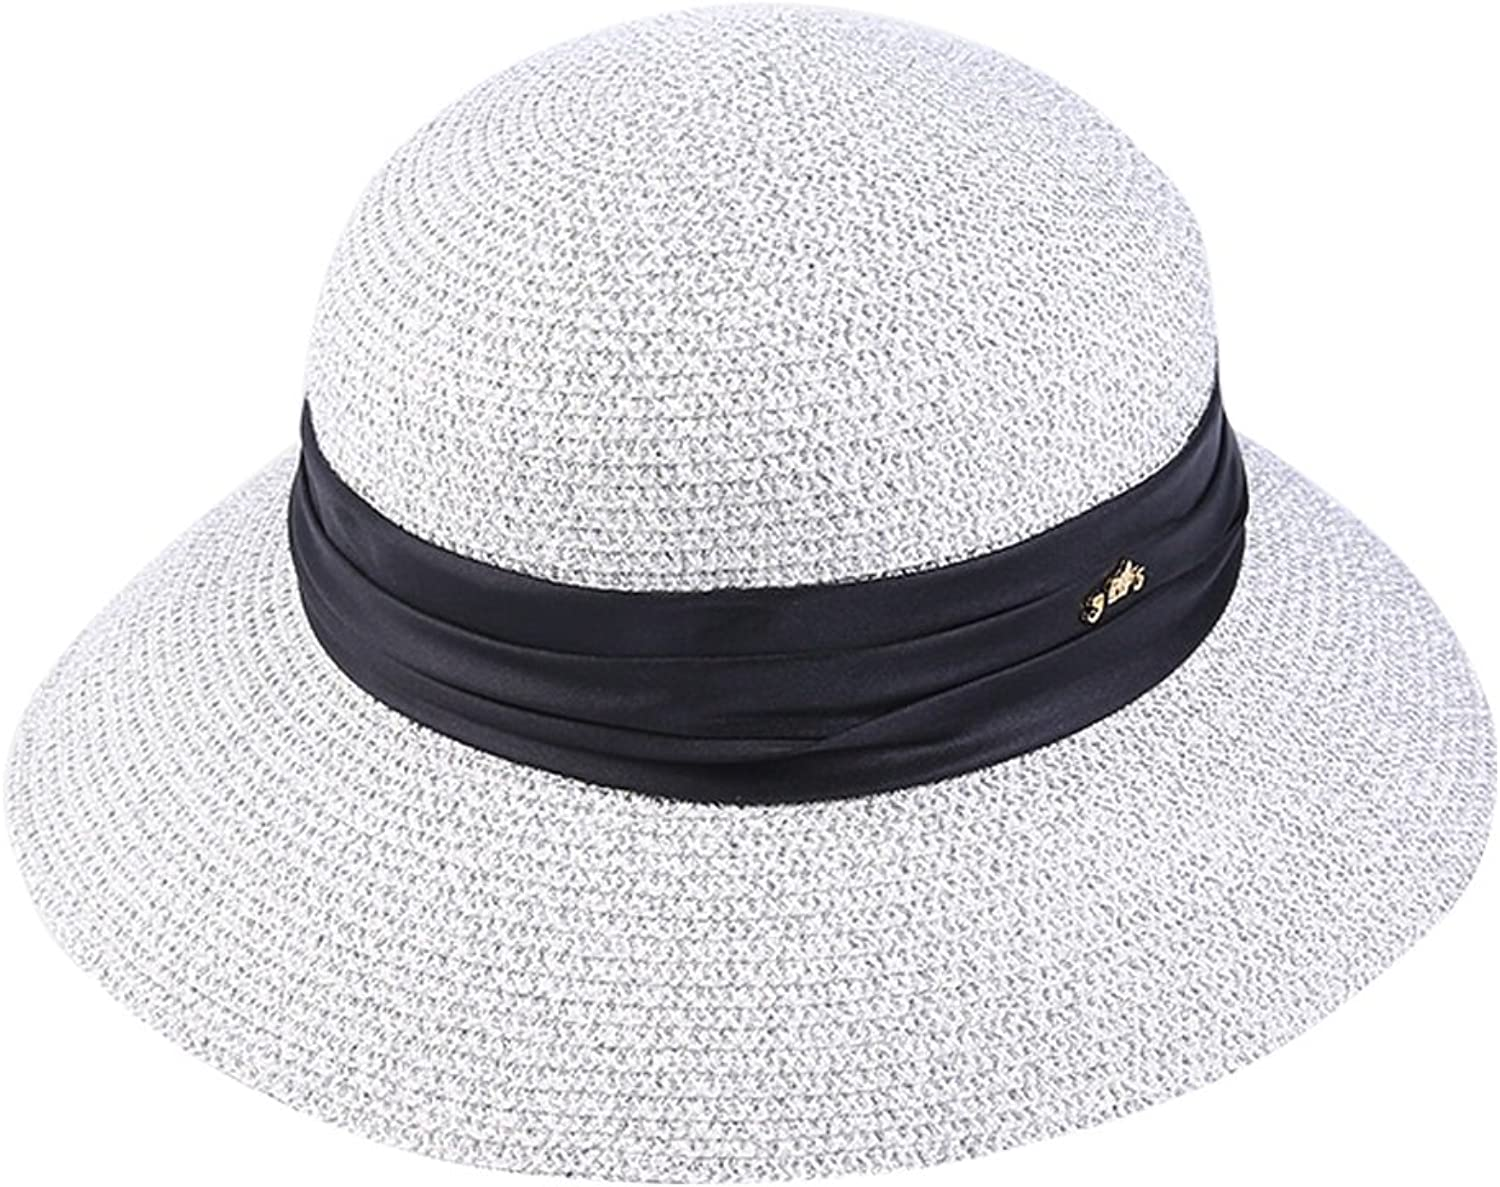 Hat Female Summer Shiny Visor Small Dome Hat Beach Hat Straw Hat Bright Silk Mixed Hat (color   White)